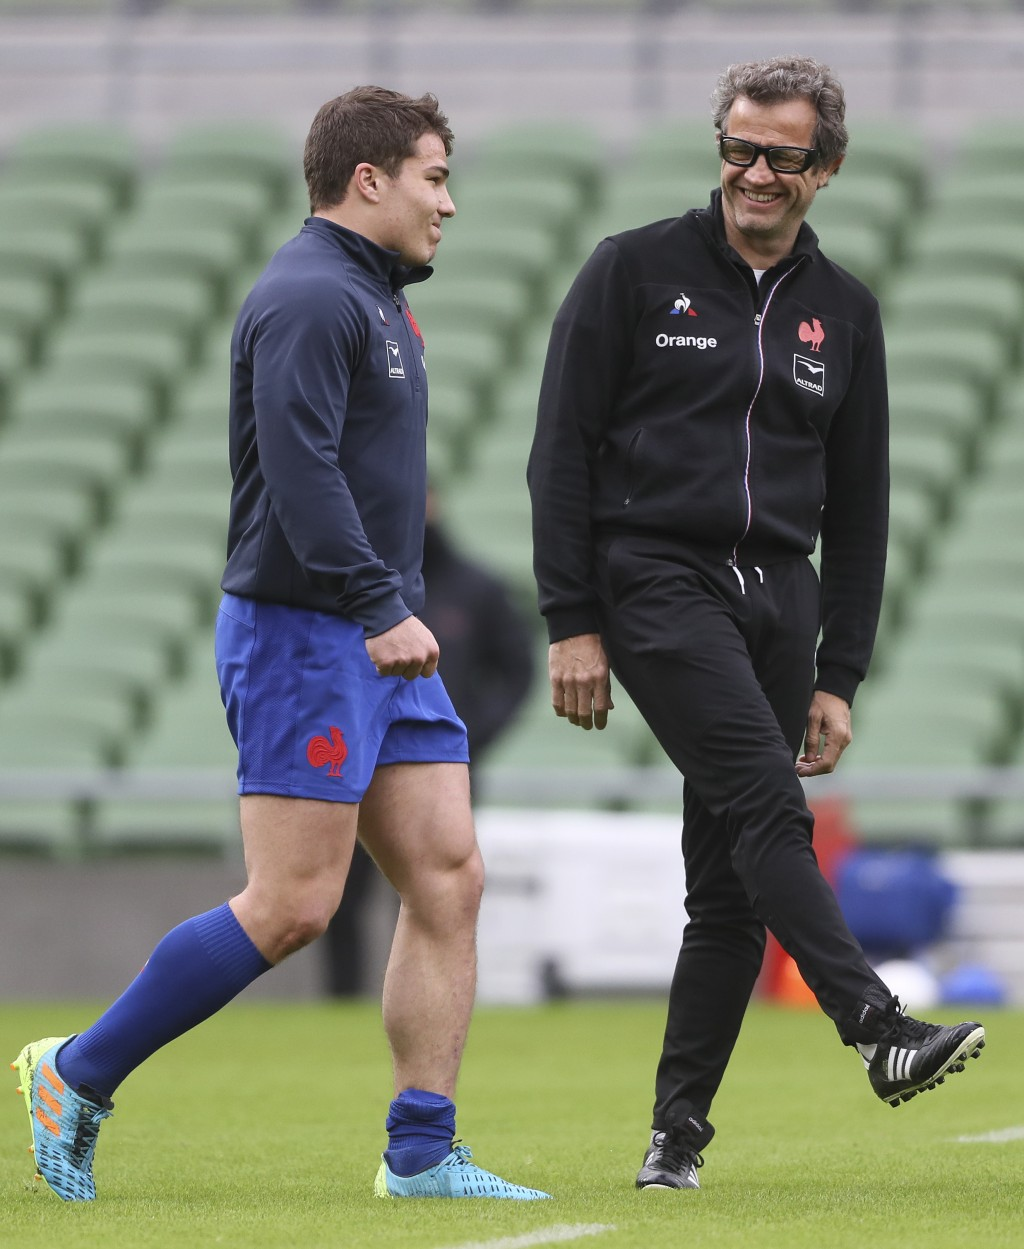 Antoine Dupont of France speaks with French team coach Fabien Galthie during the warm-up before the Six Nations rugby union match between Ireland and ...